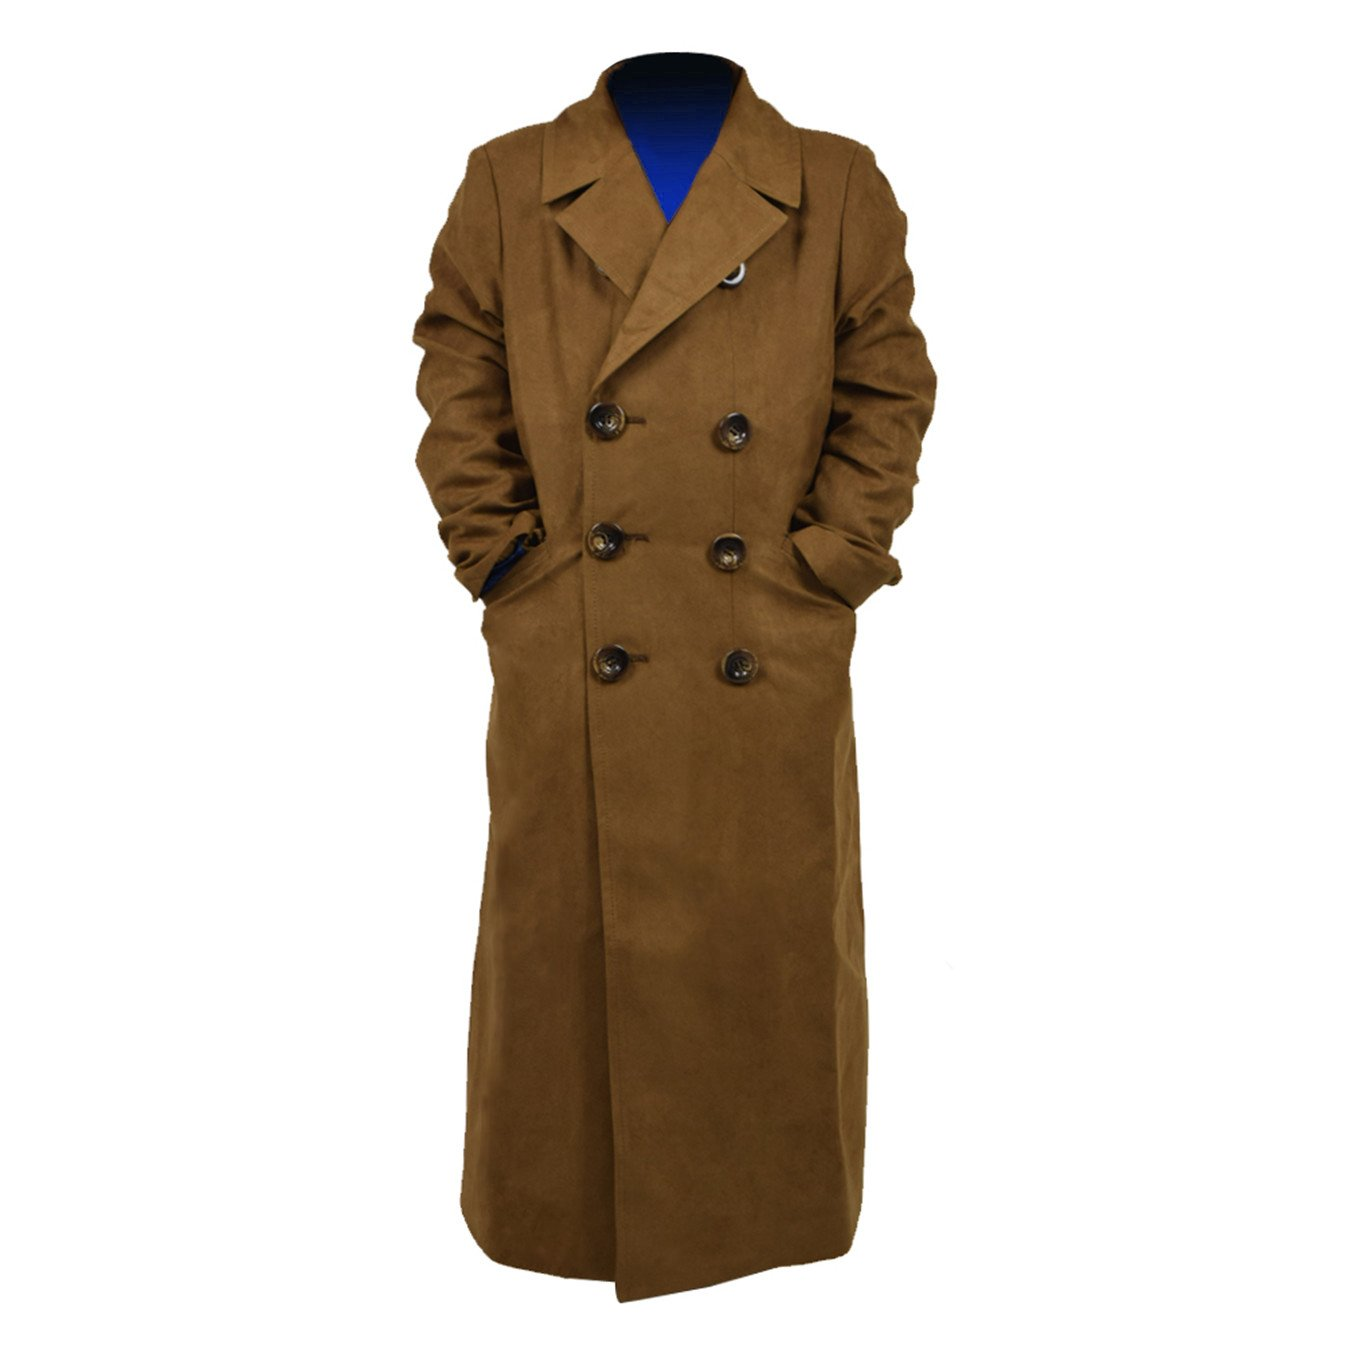 YANGGO Children's Party Halloween Outfit Cloak and Trench Coat Costume (X-Small, Brown Trench Coat)